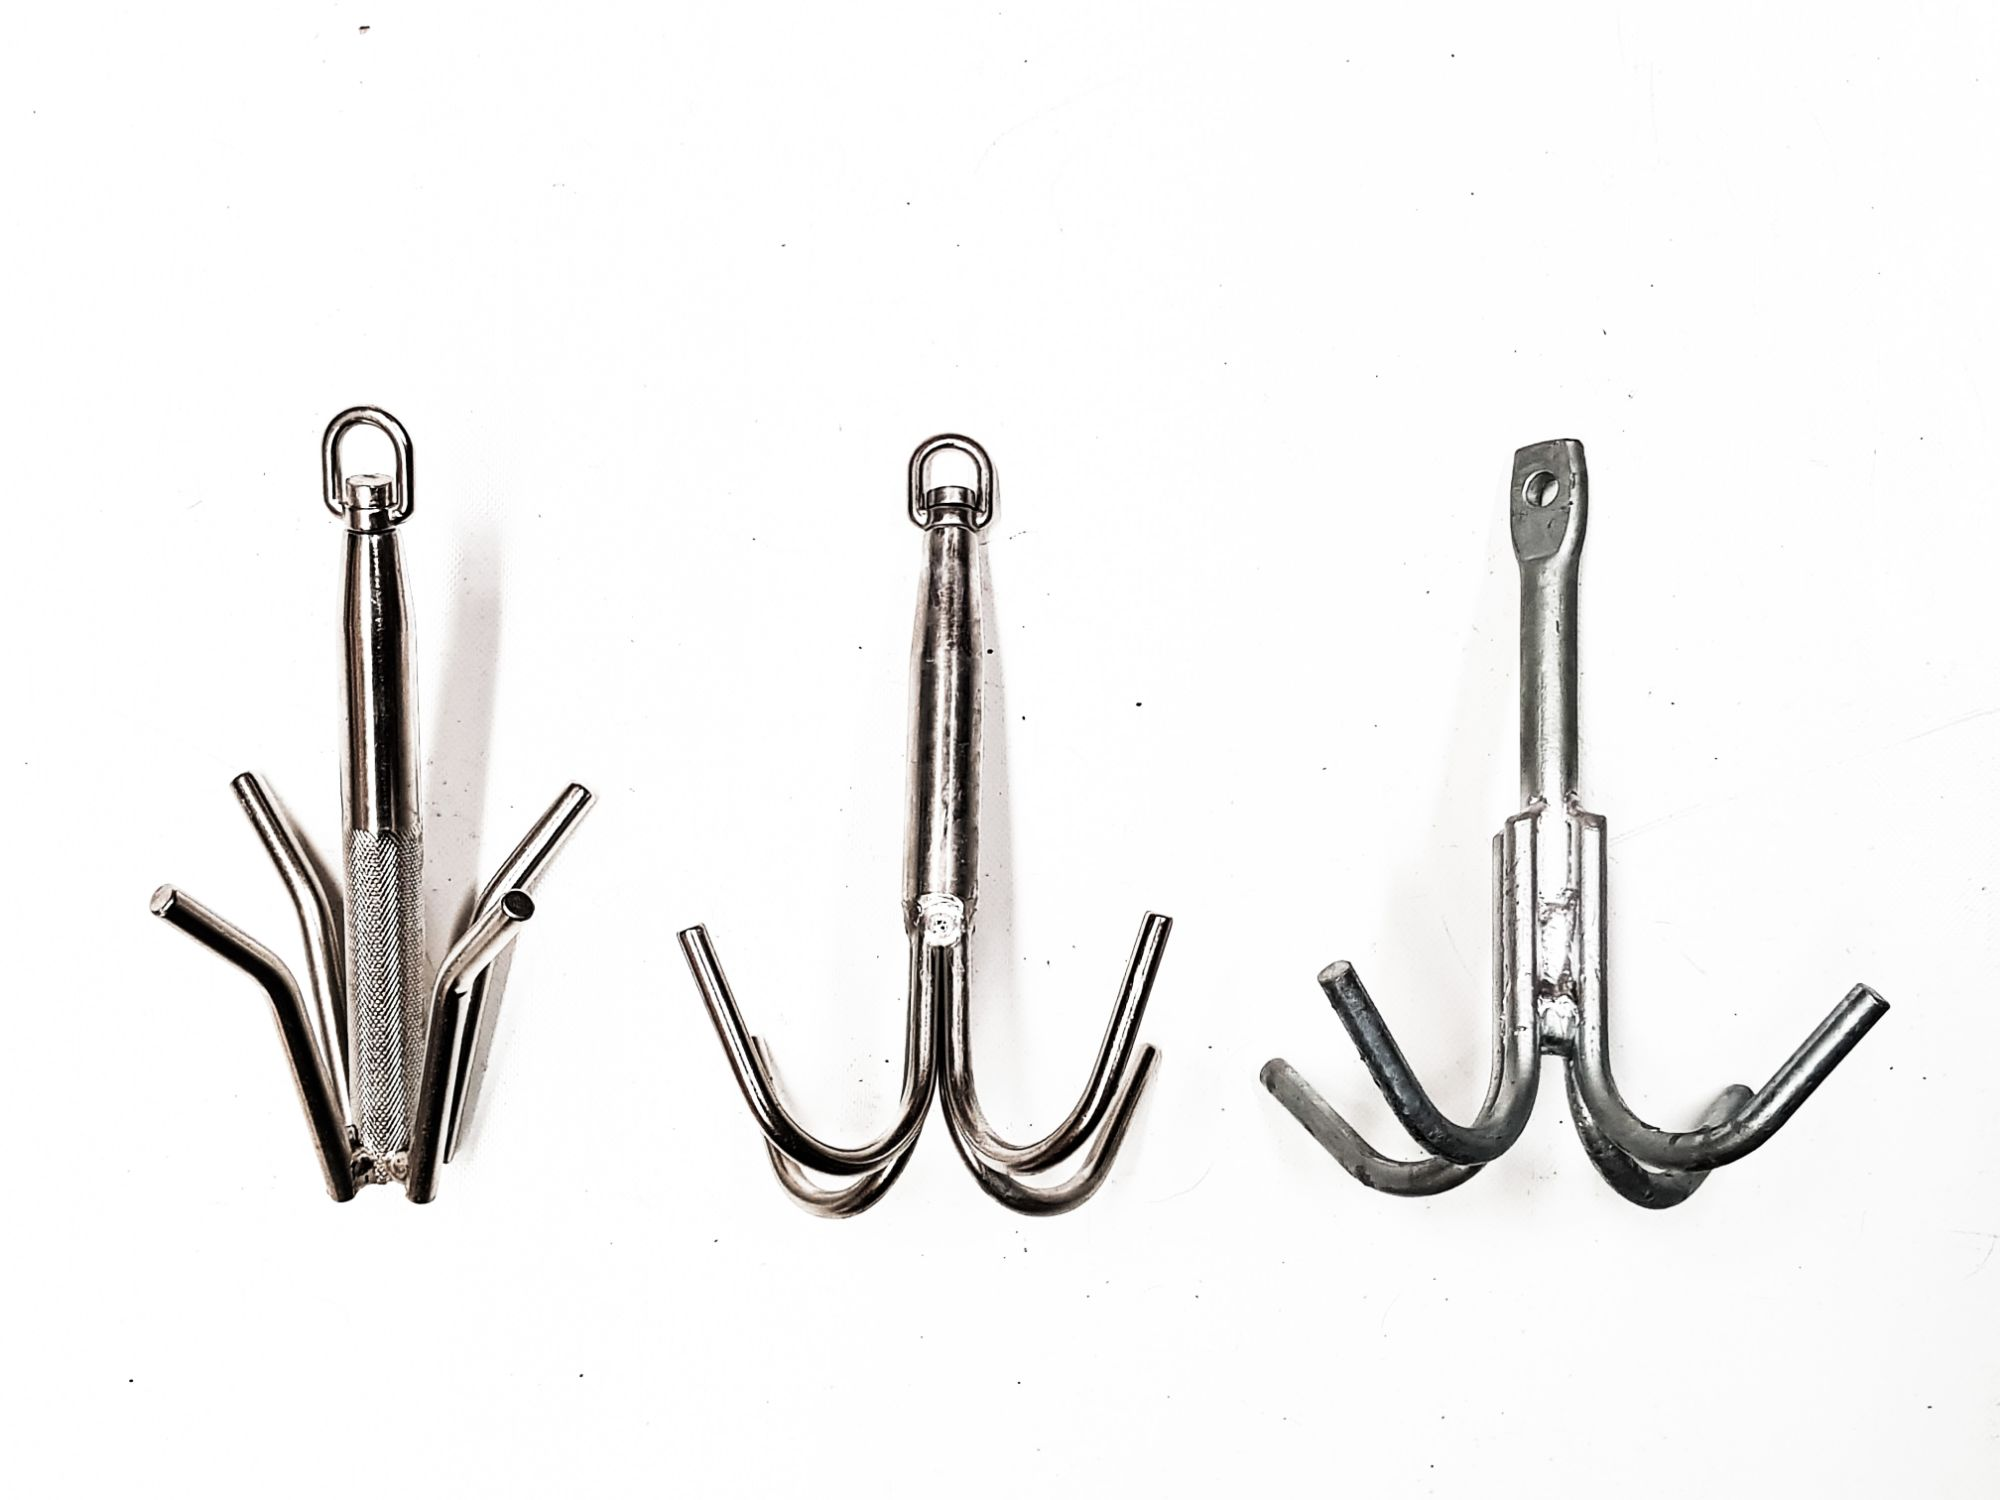 Grapple Hooks For Sale in Perth, Western Australia